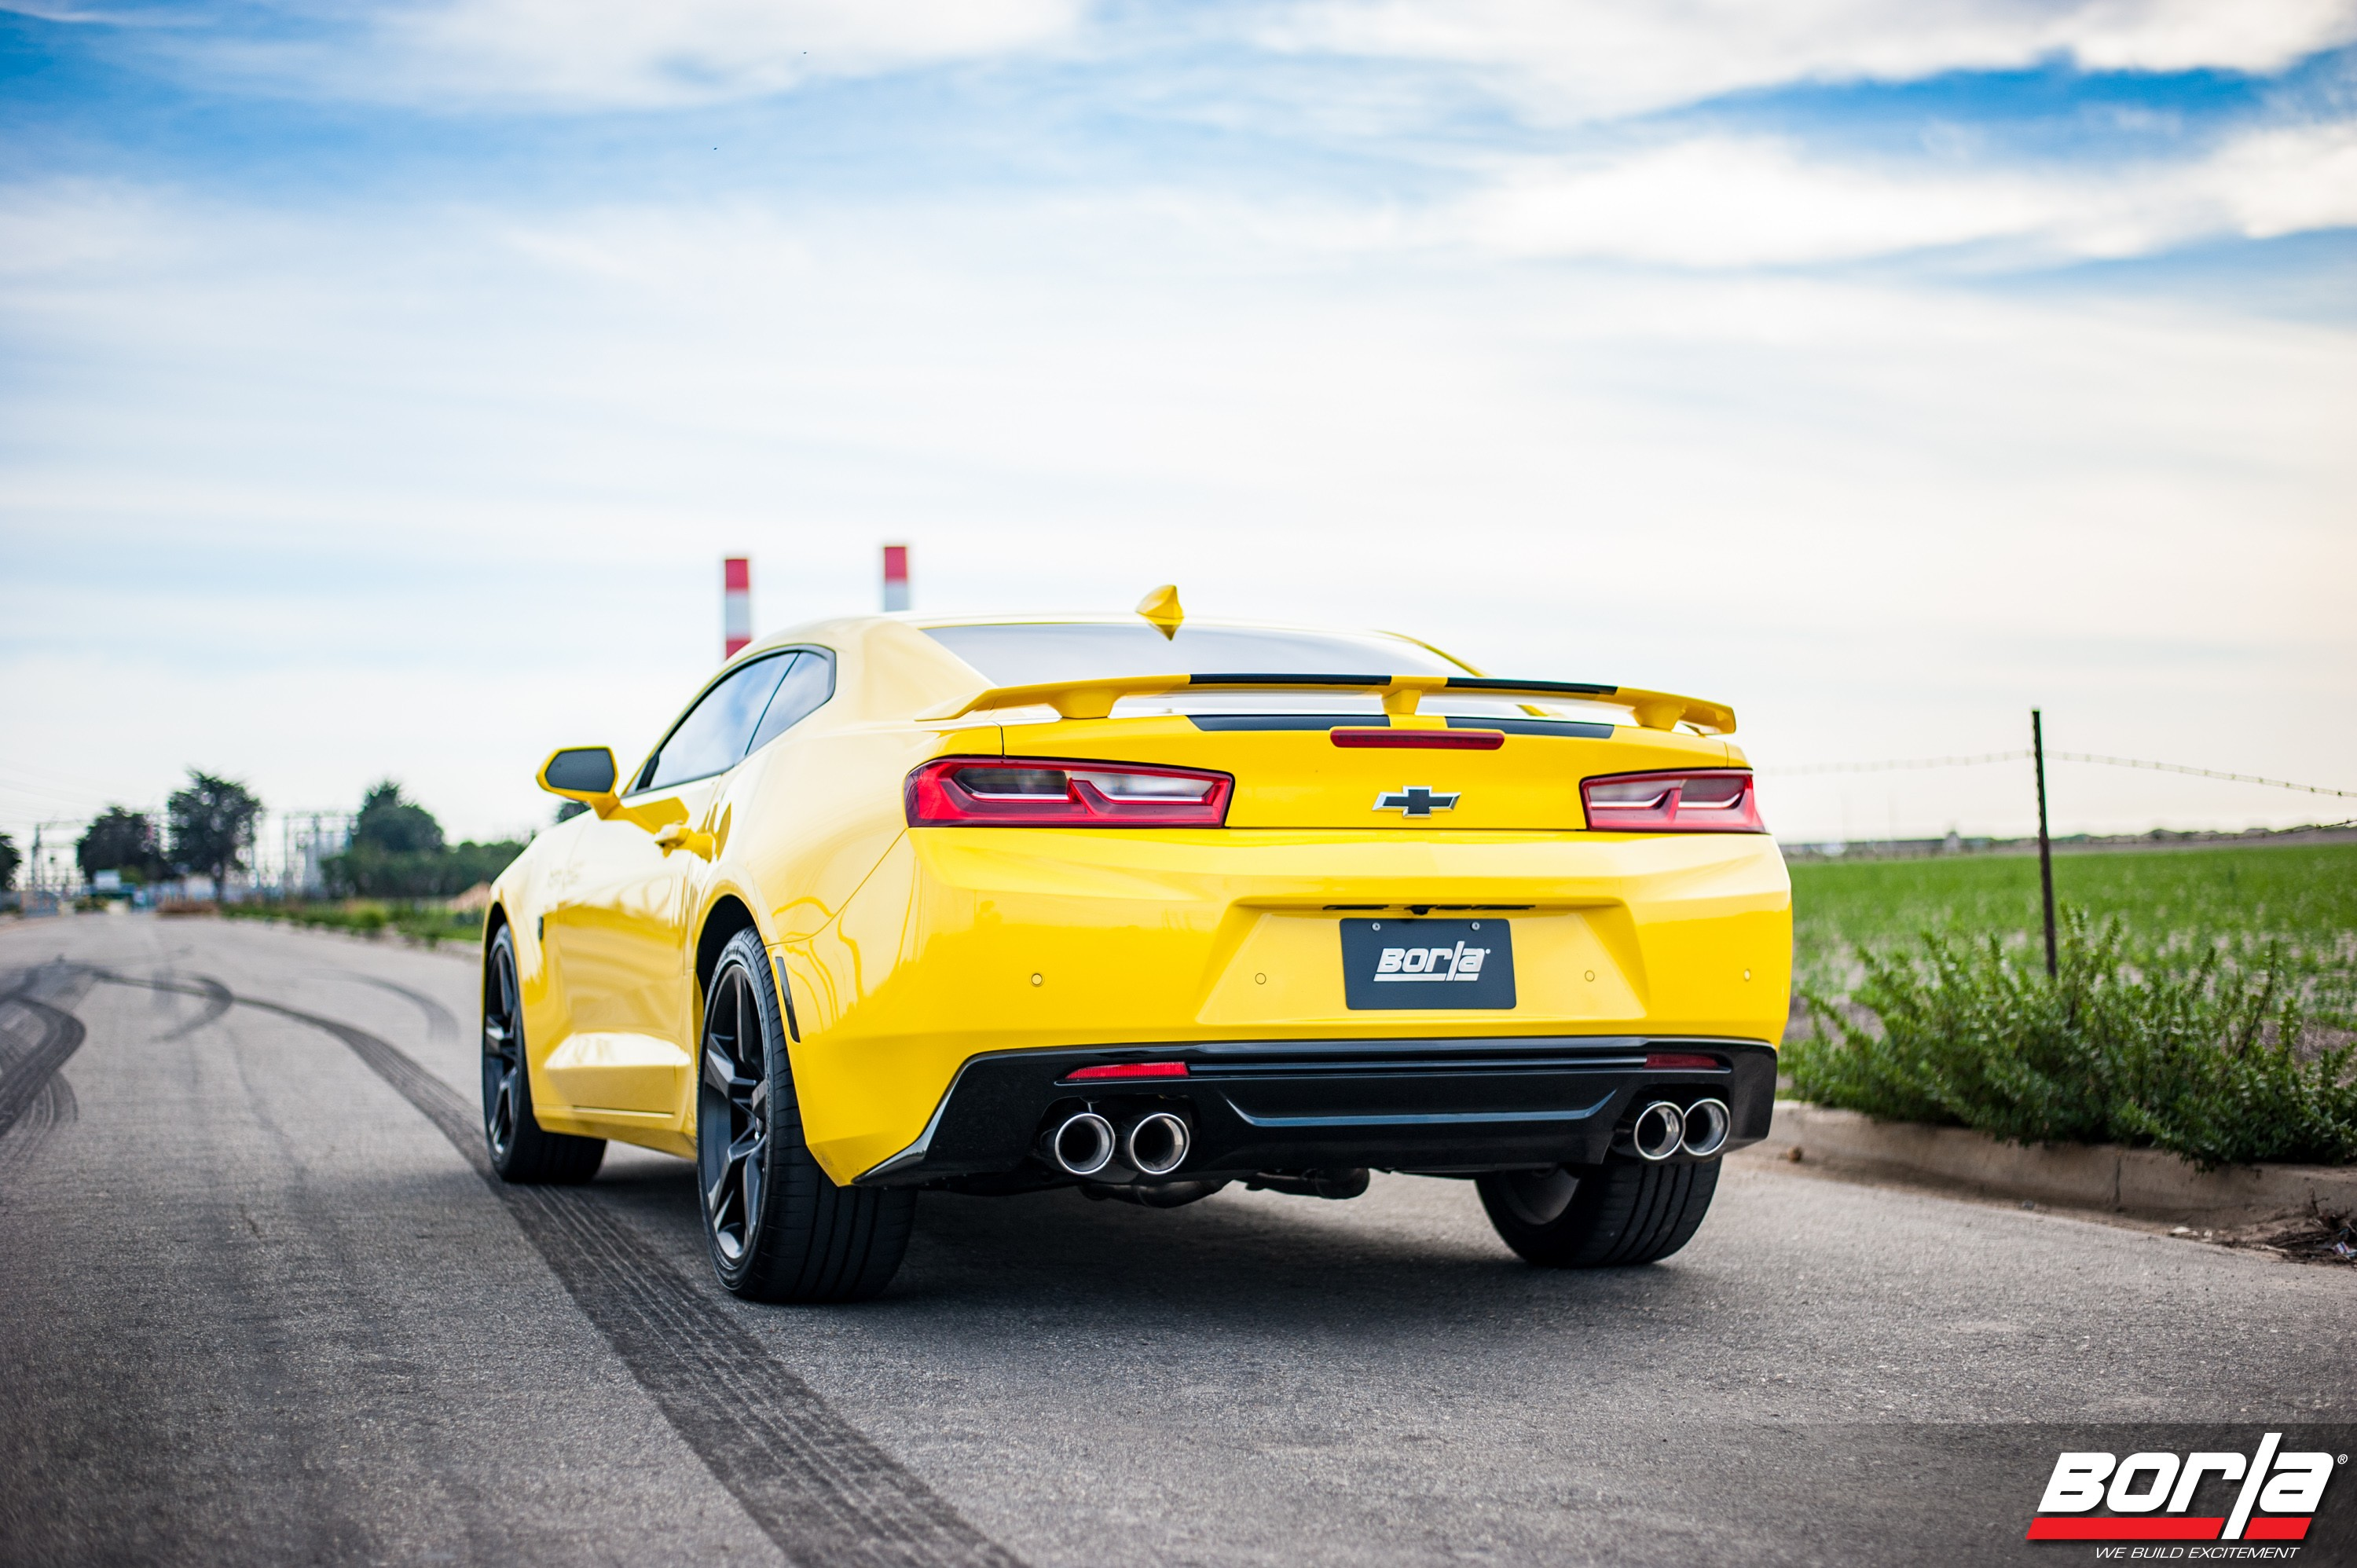 2016 chevrolet camaro ss equipped with borla exhaust system